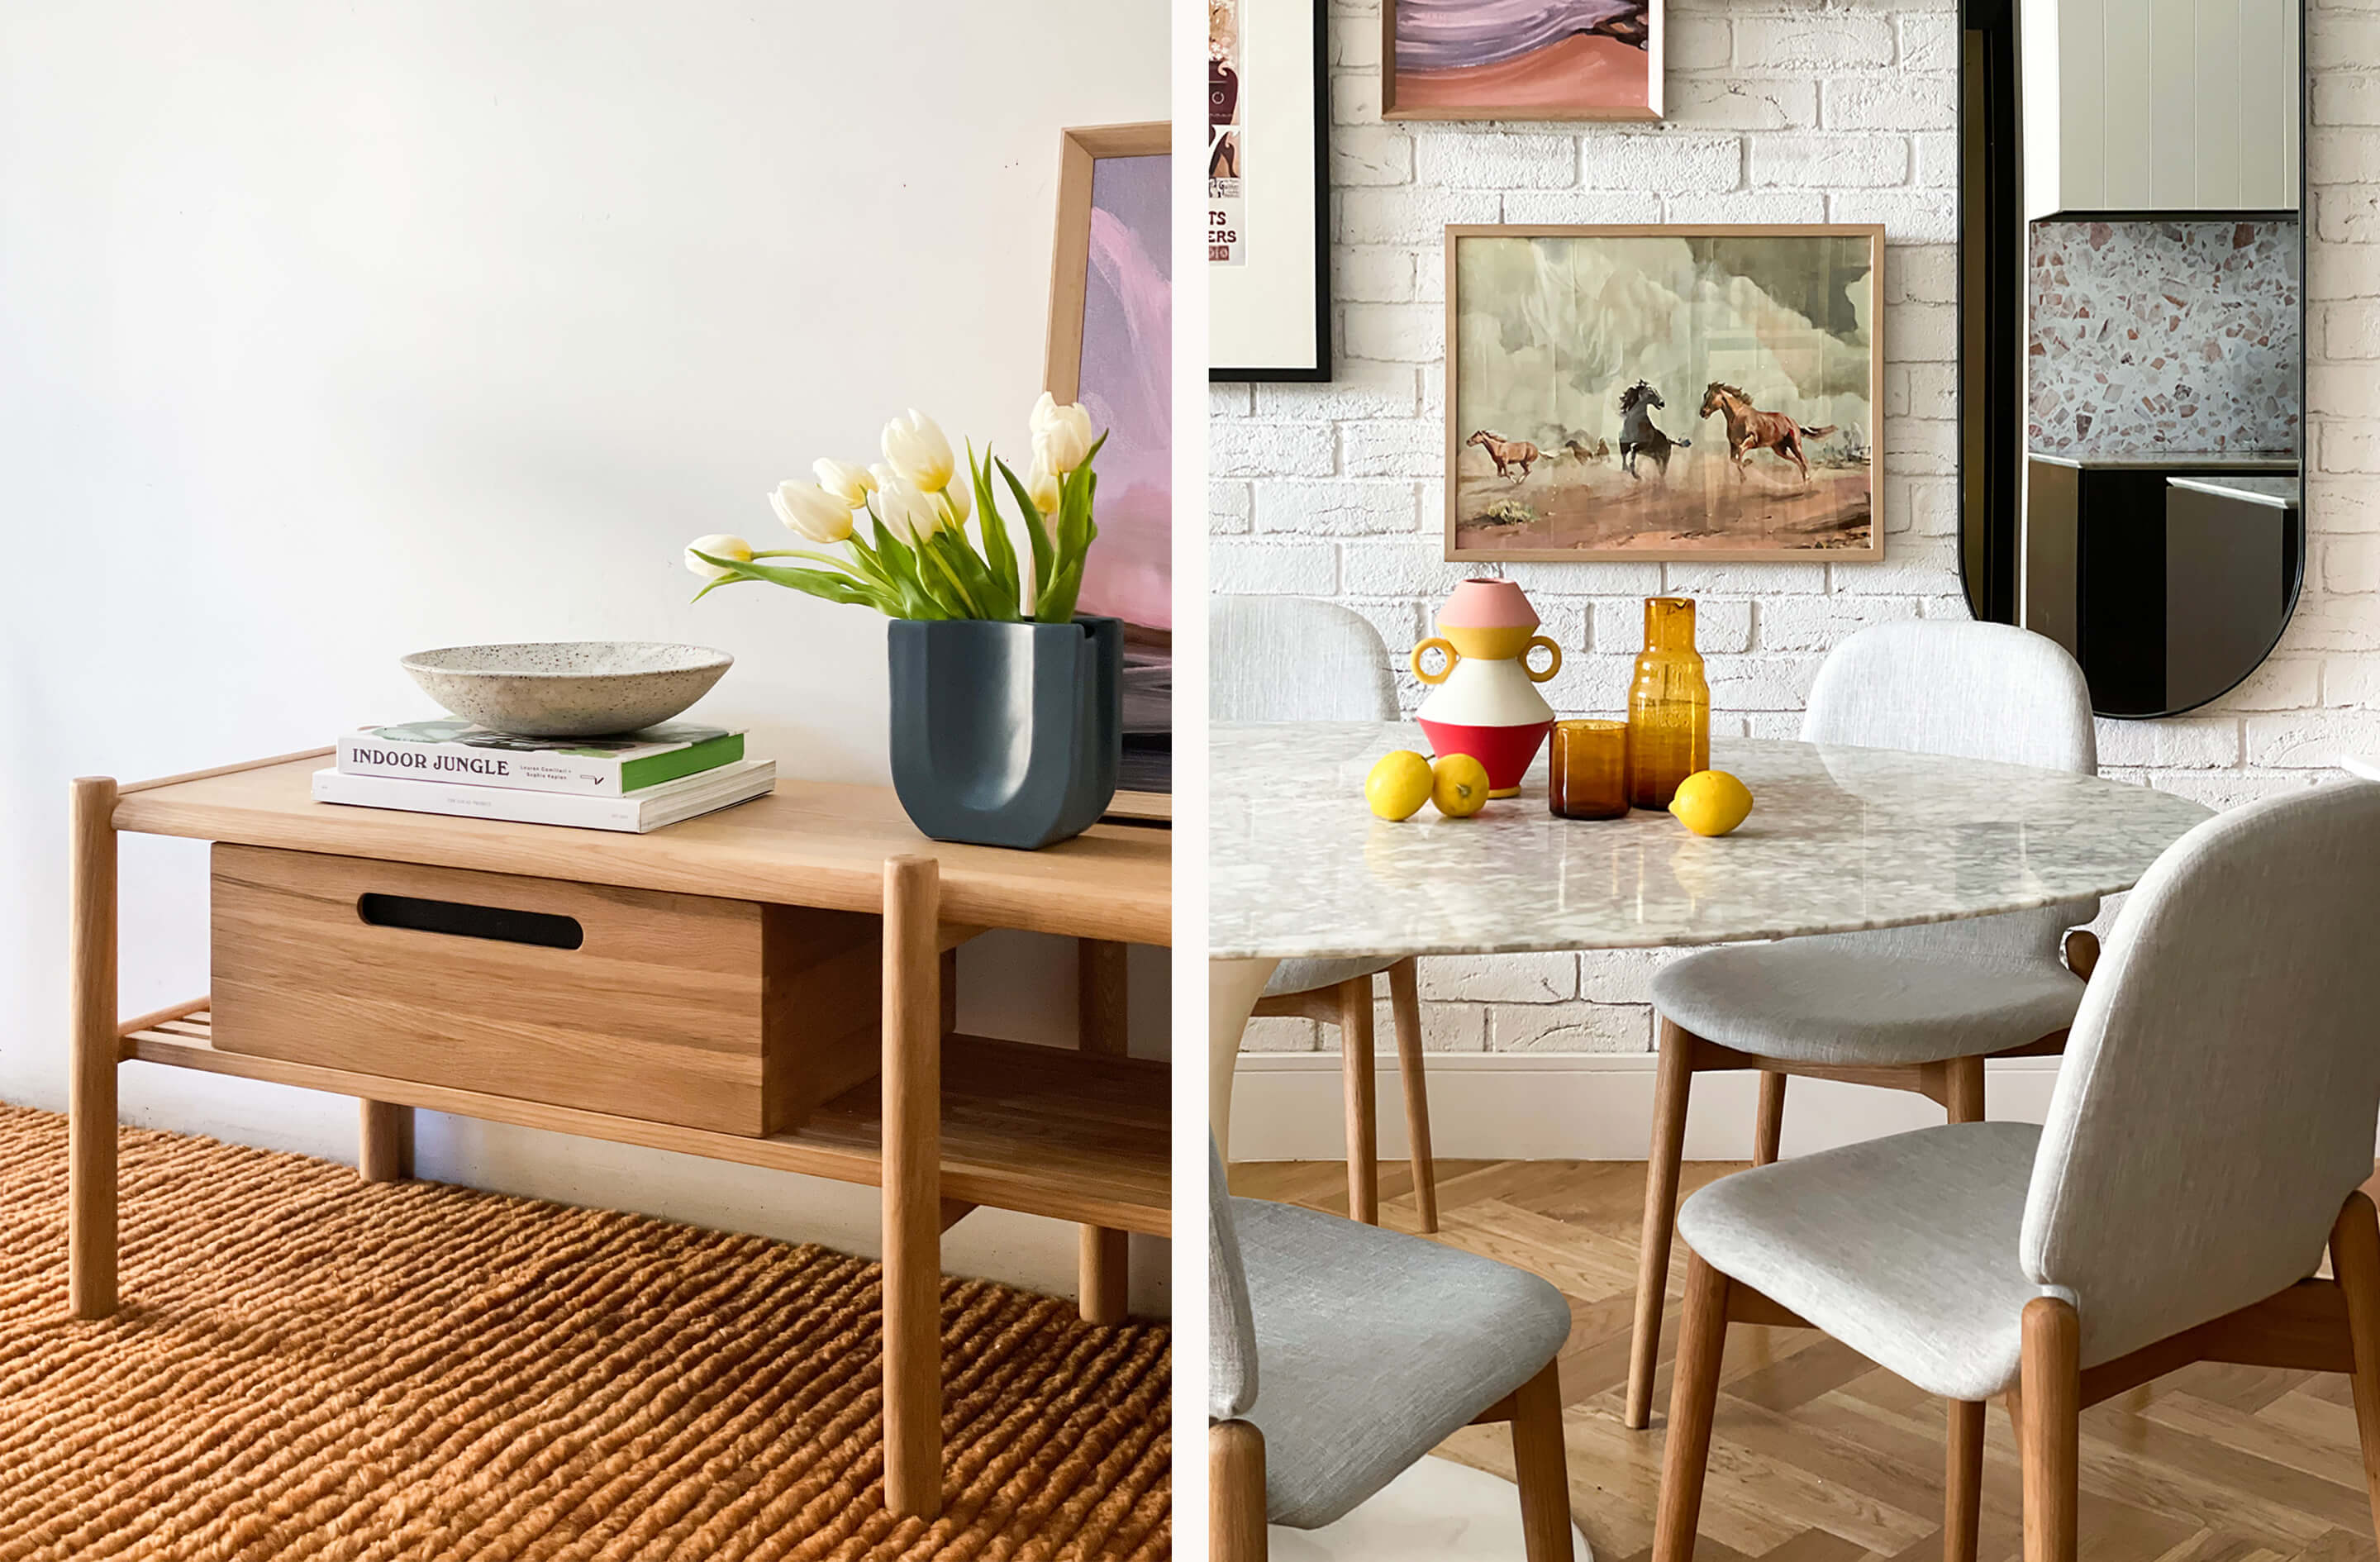 Life at home with our friend Jono Fleming: see our new collection of dining chairs, armchairs, benches, and homewares styled in his home